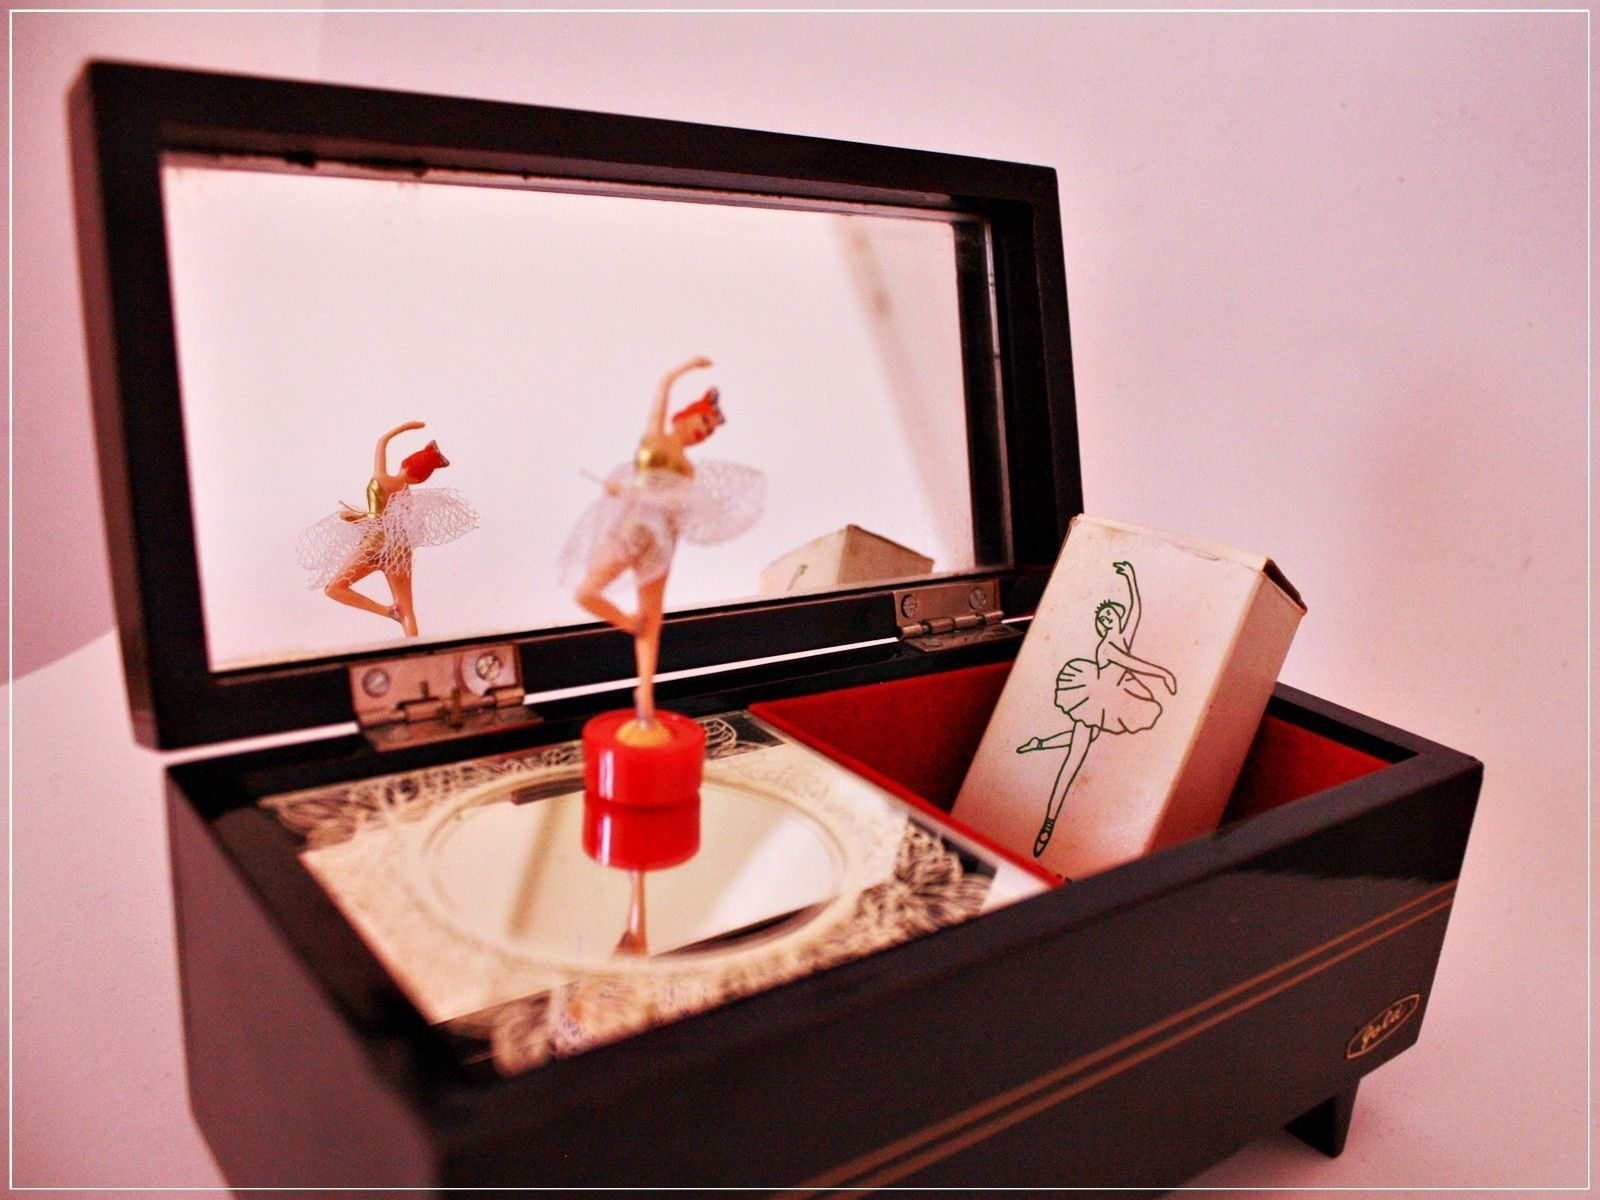 VINTAGE DANCING BALLERINA MUSIC BOX Wooden Japanese jewelry with